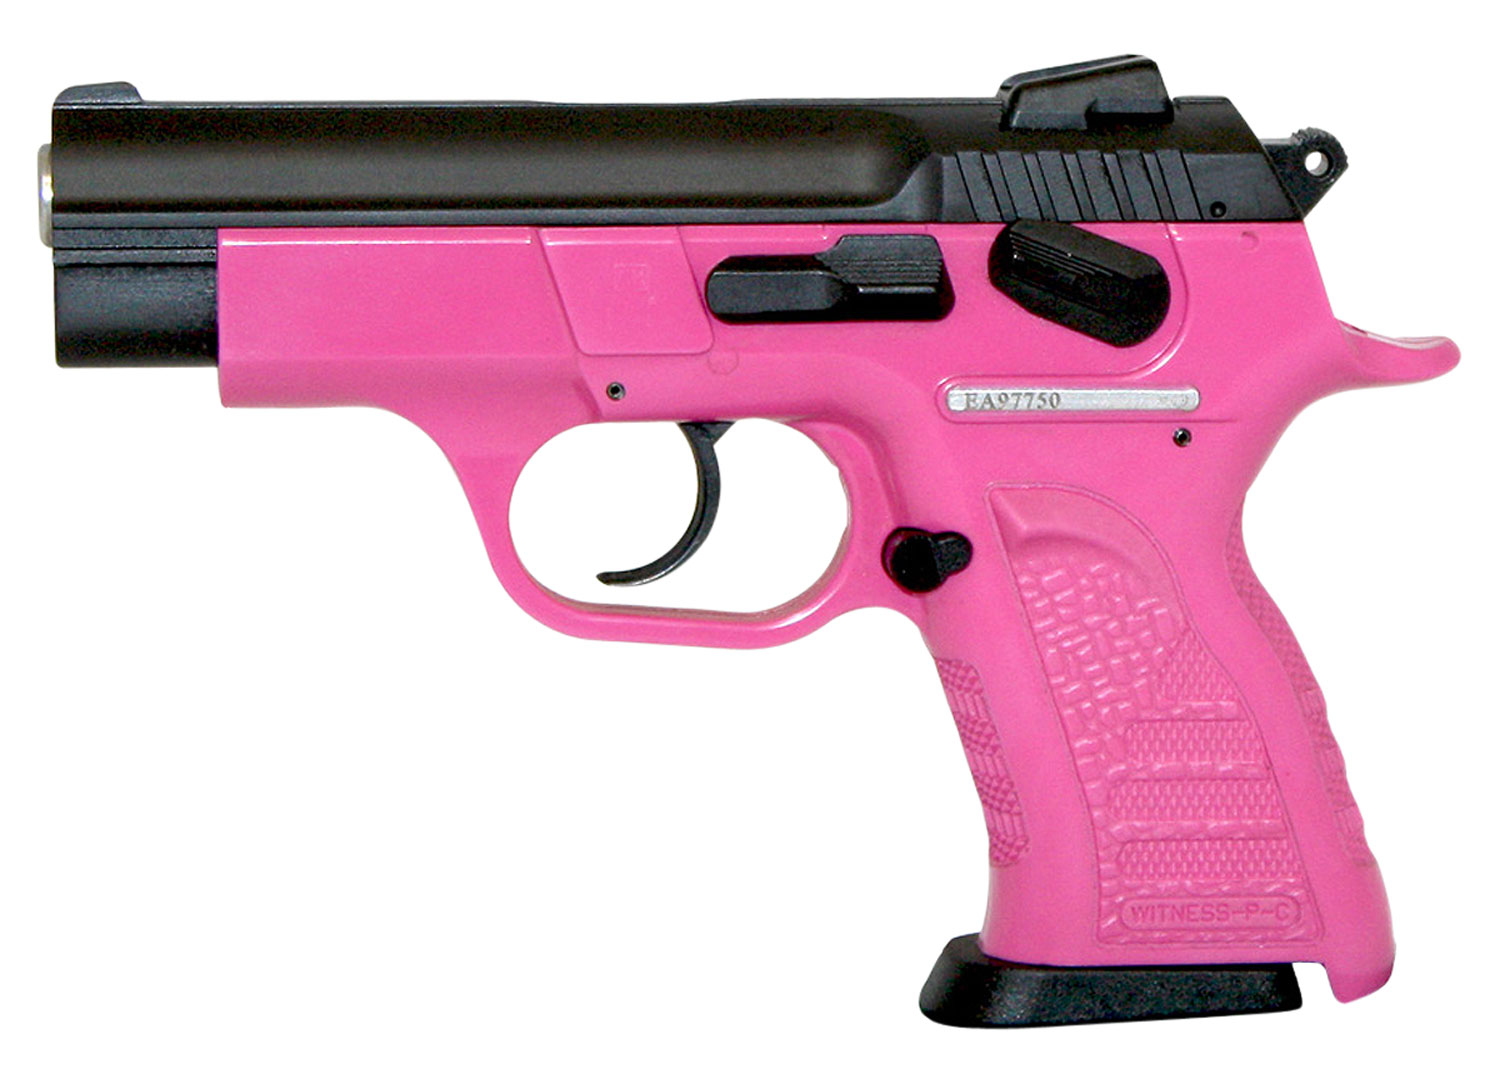 EAA 999041 WITNESS PINK LADY 9MM 13RD